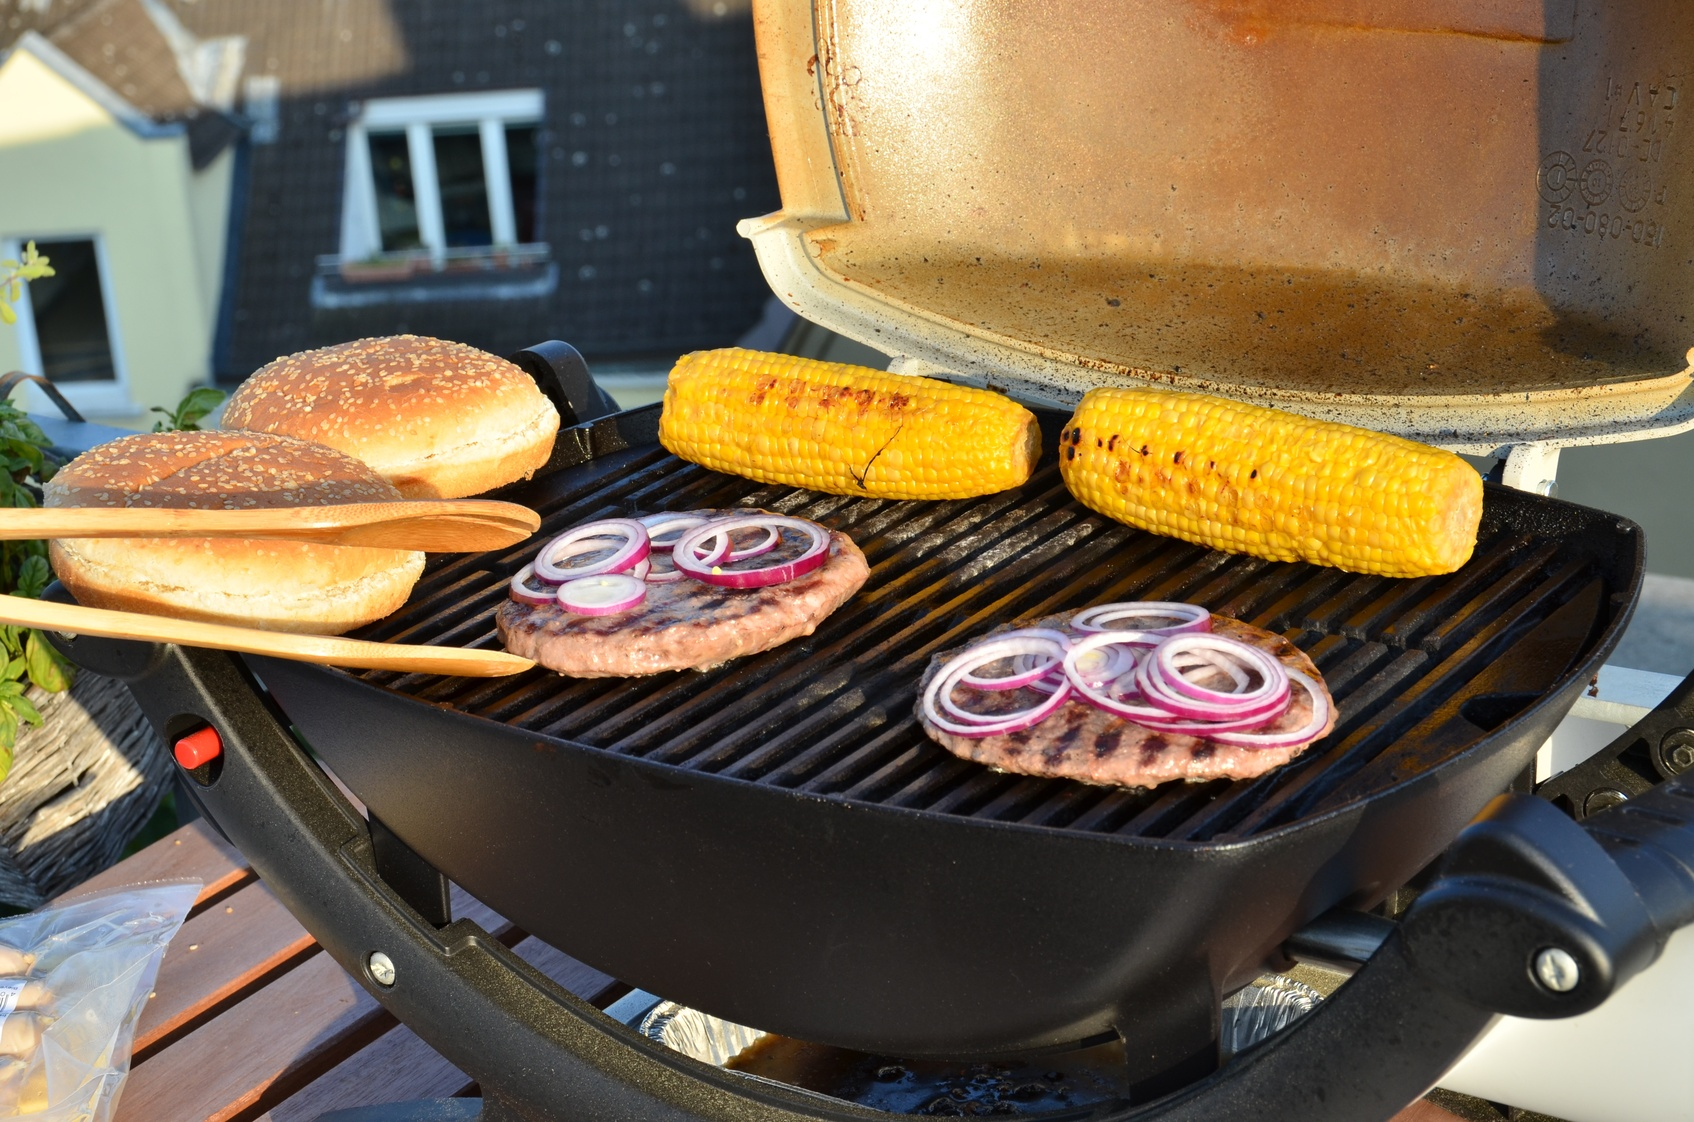 Are barbeques permitted on the balcony or terrace of your apartment?